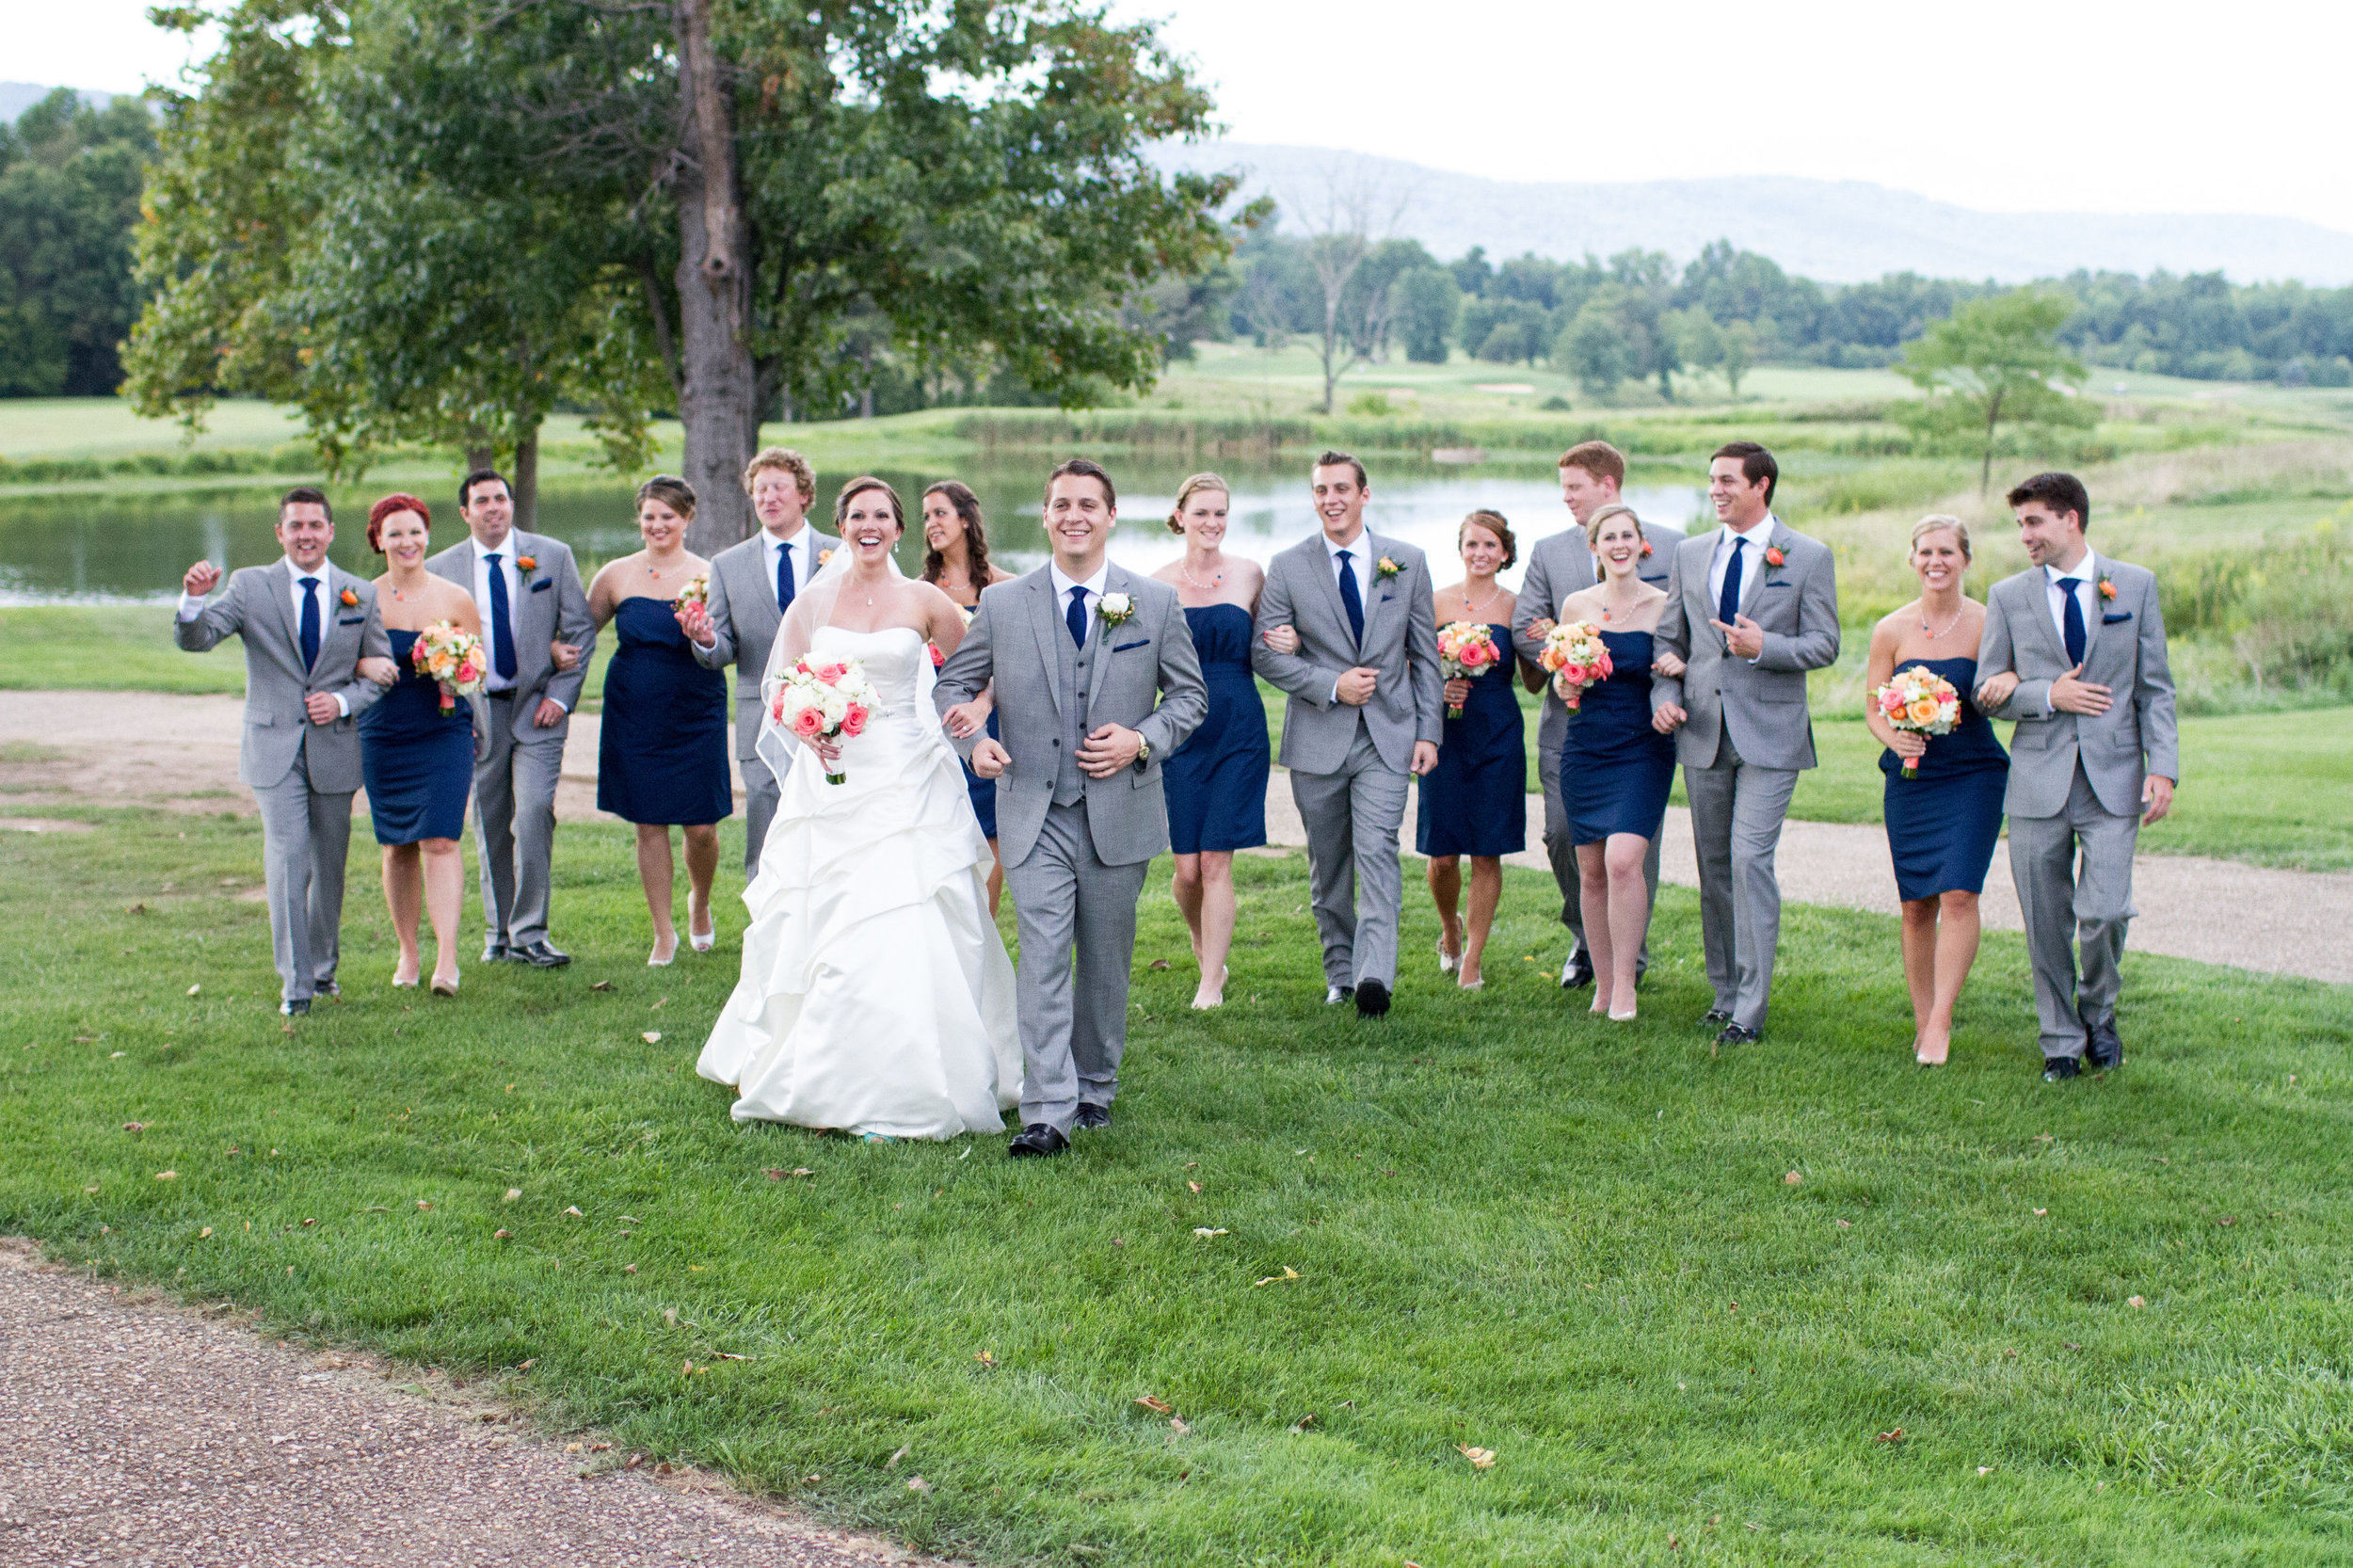 Grey and navy bridal party | Bull Run Golf Club wedding